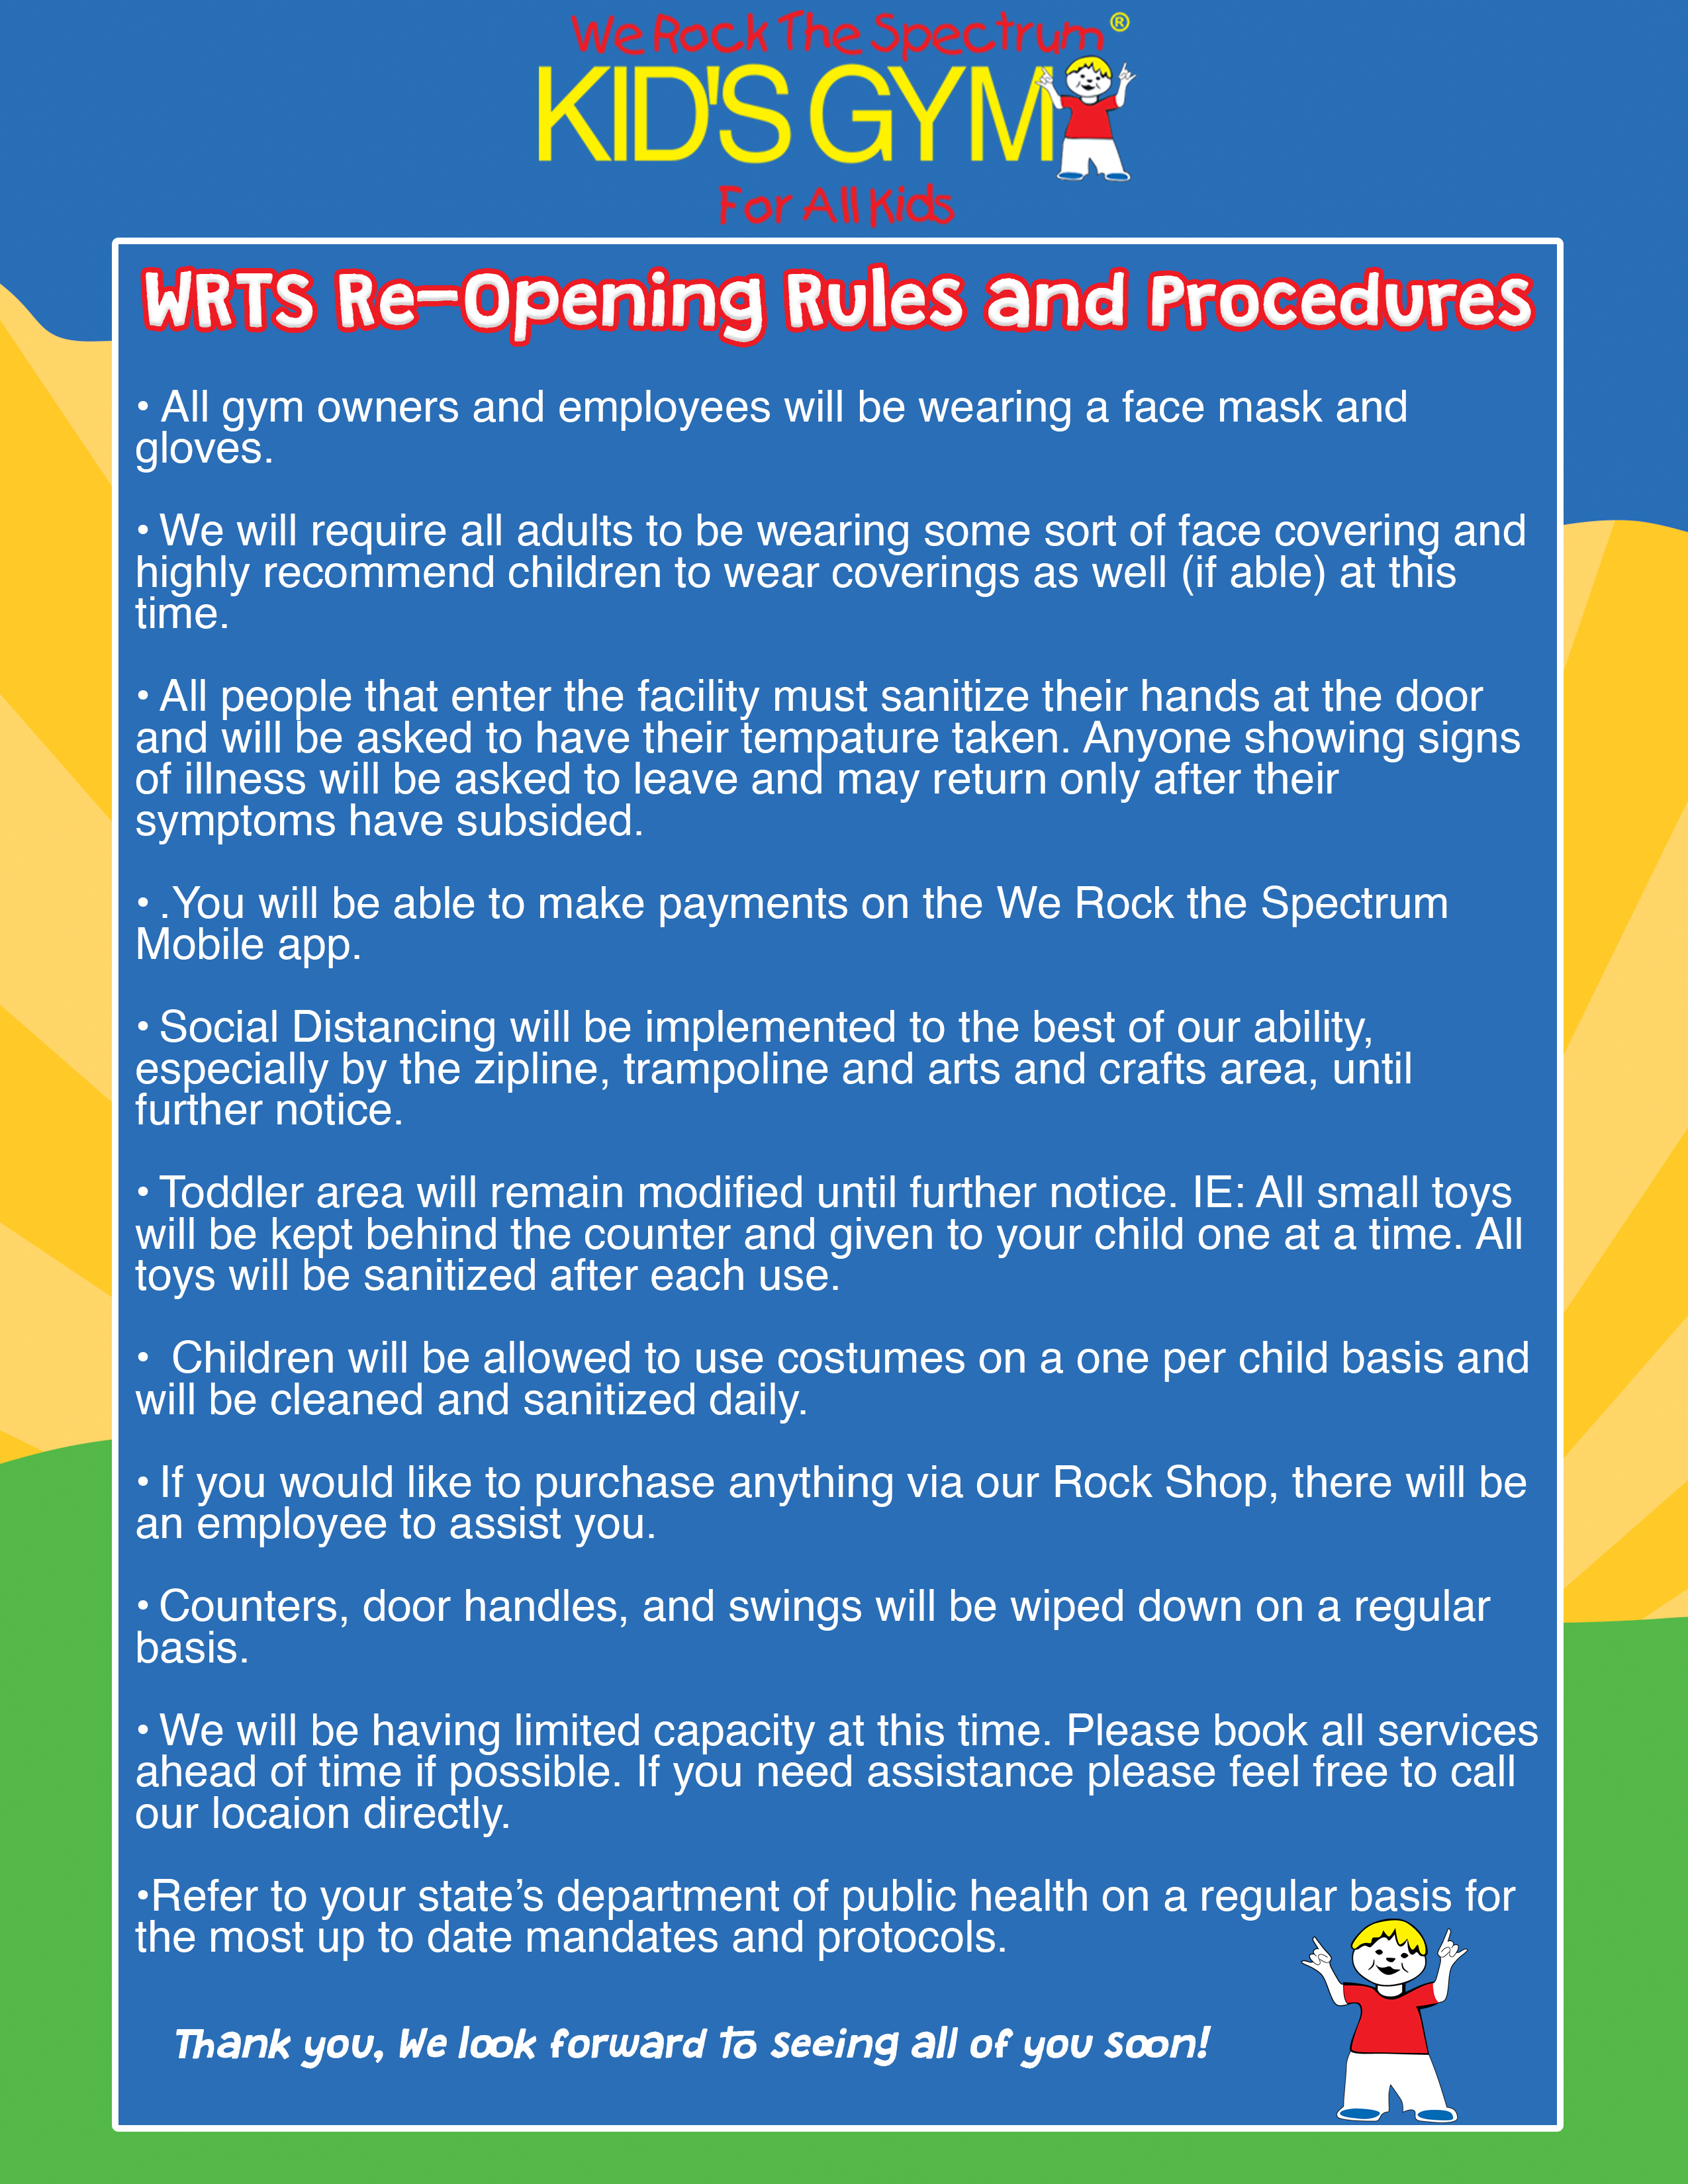 WRTS re-opening procedures